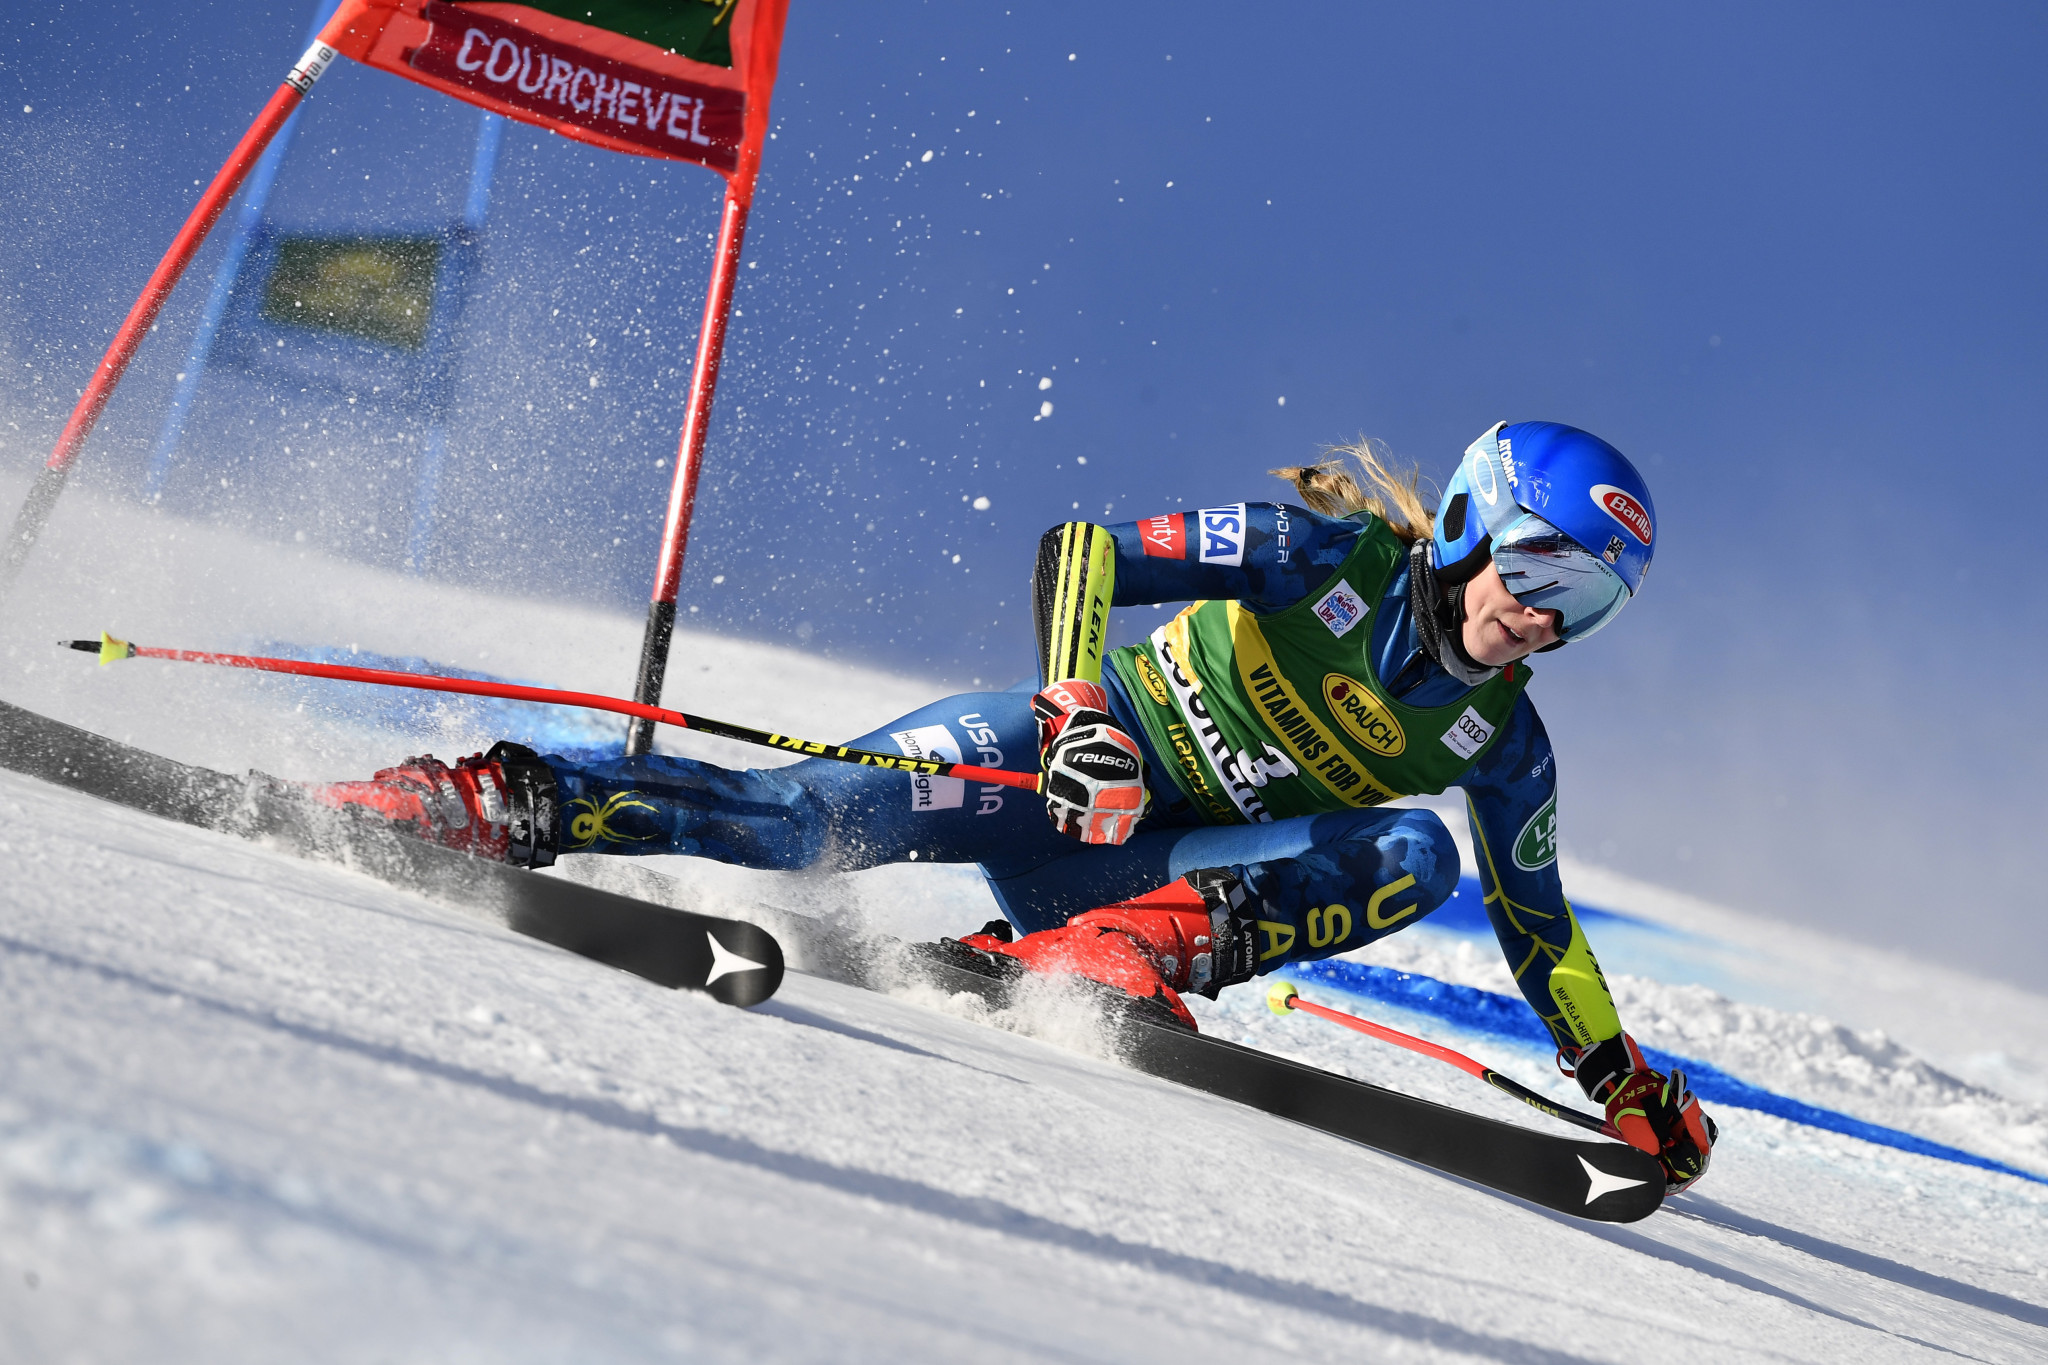 Mikaela Shiffrin is among the favourites for the two World Cup races in Semmering ©Getty Images